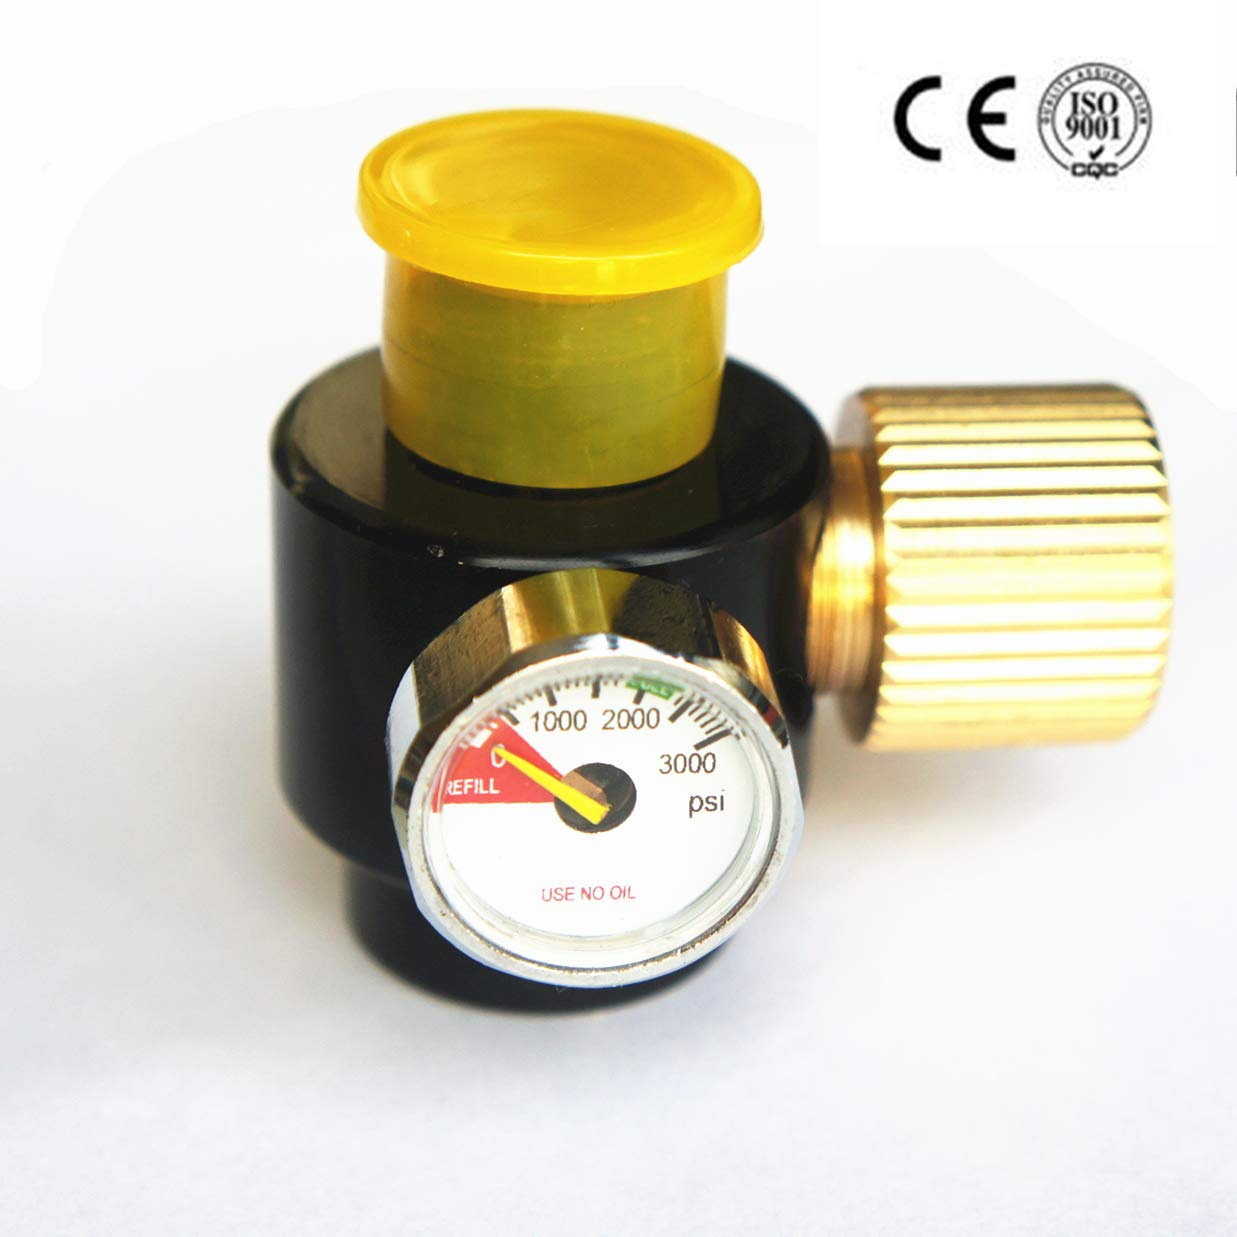 Airsoft PCP Paintball Tank Cylinder Adjustable Compressed Air Regulator Output Pressure 0.825-14NGO Thread (0-3000PSI Output) by Outdoor Guy